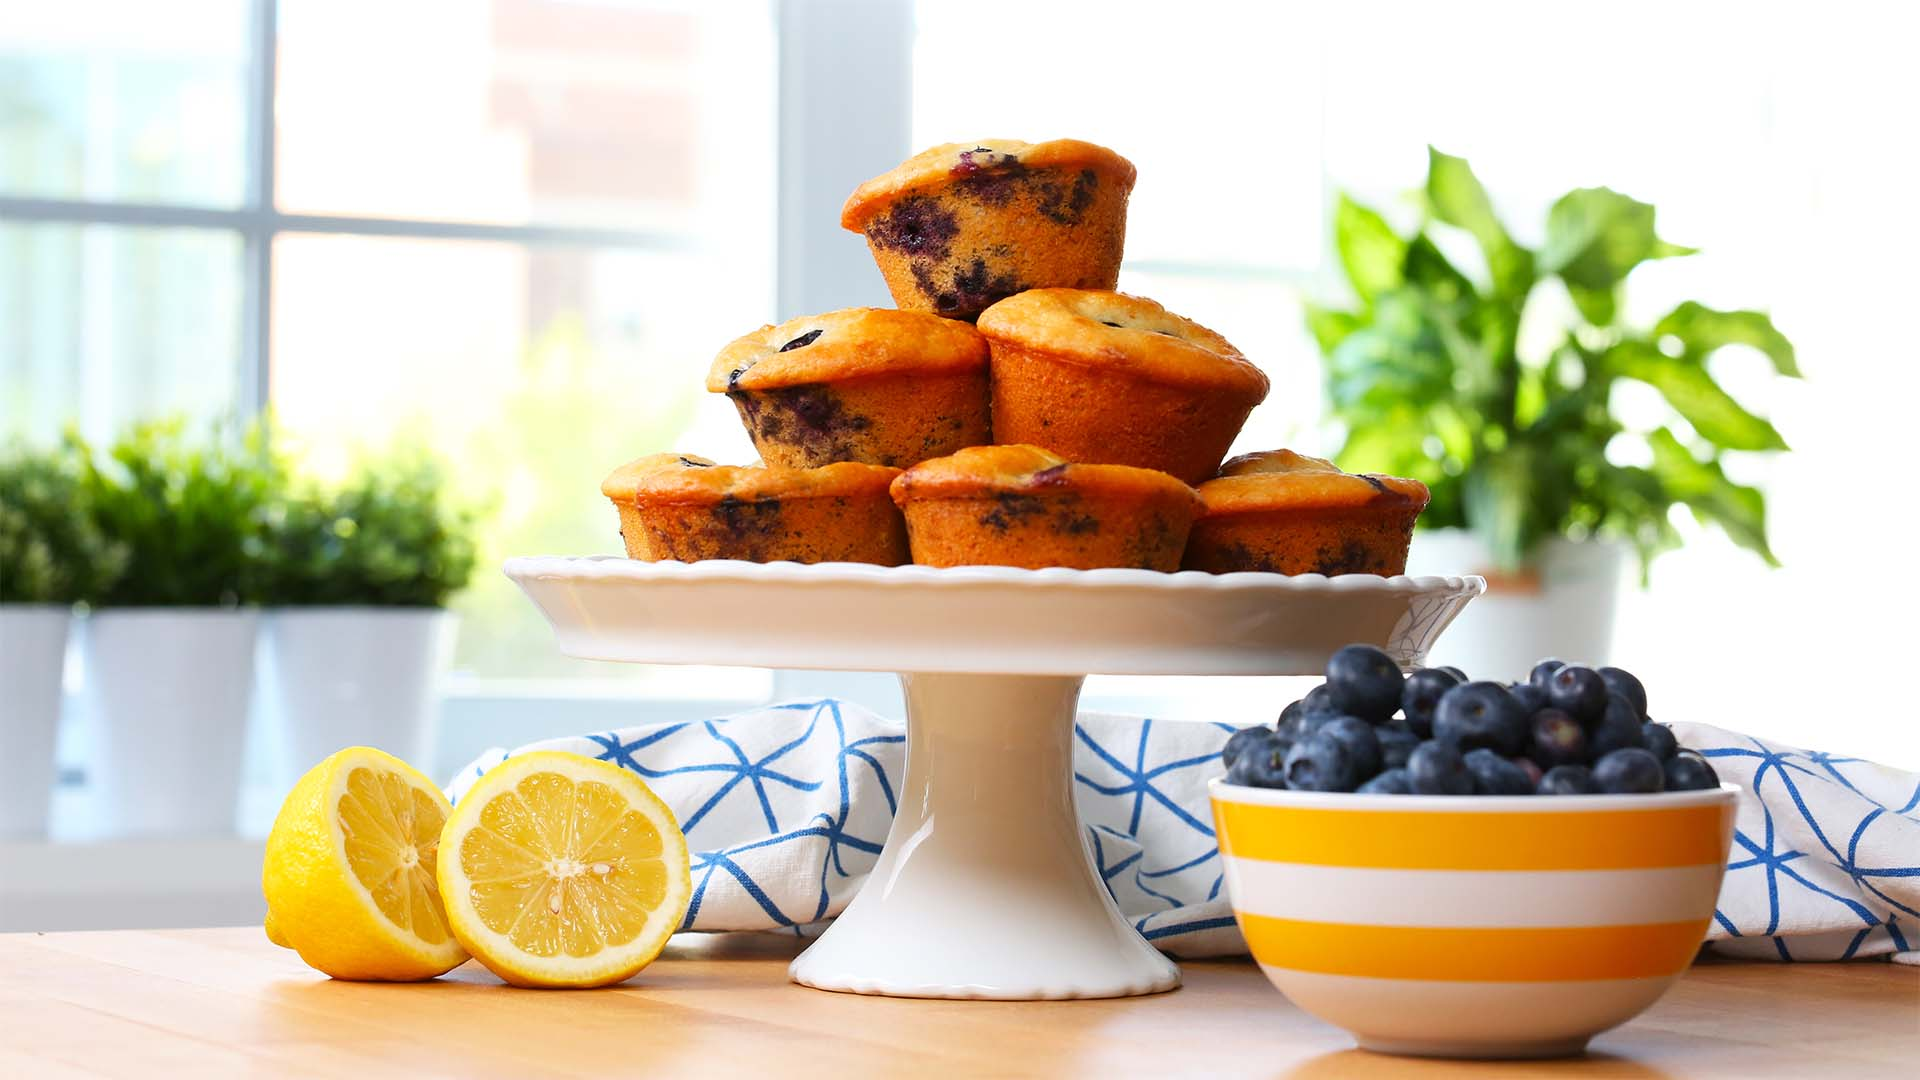 Lemon-Blueberry-Muffins 16x9